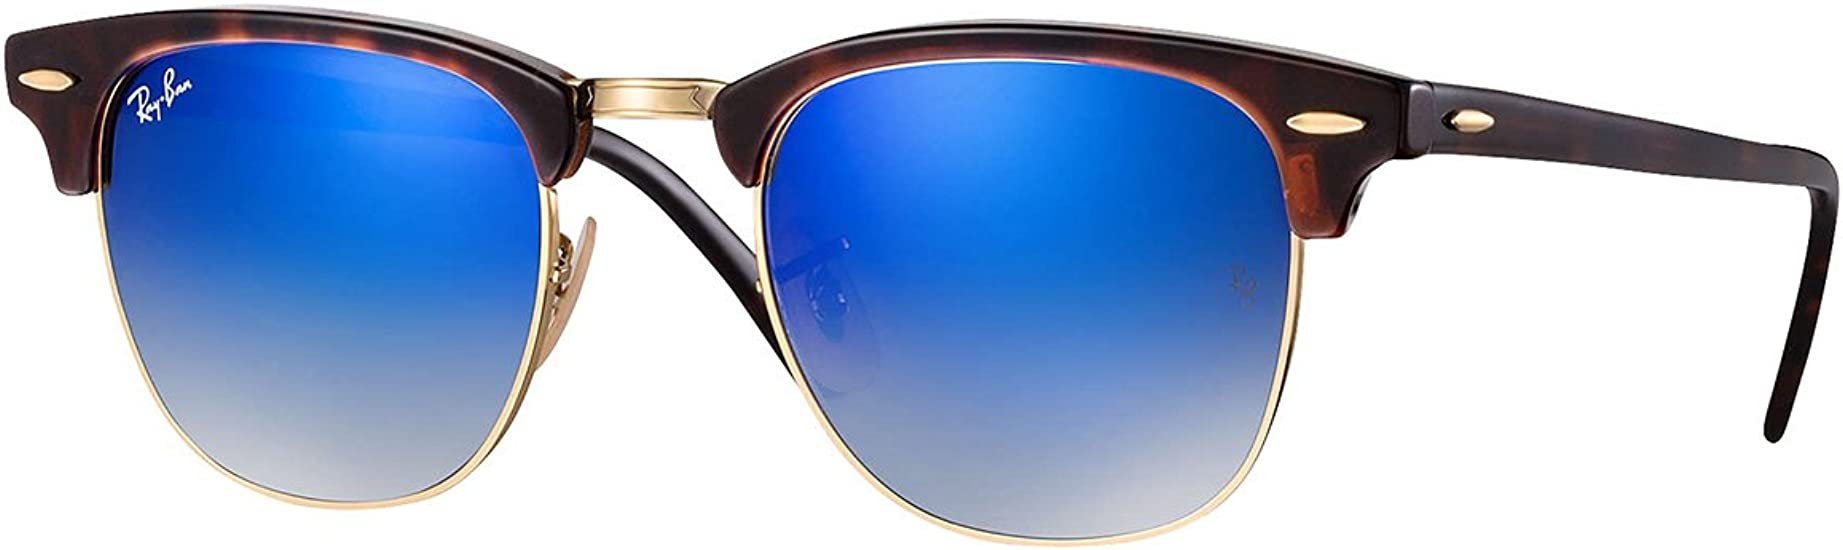 ray ban clubmaster ecaille homme